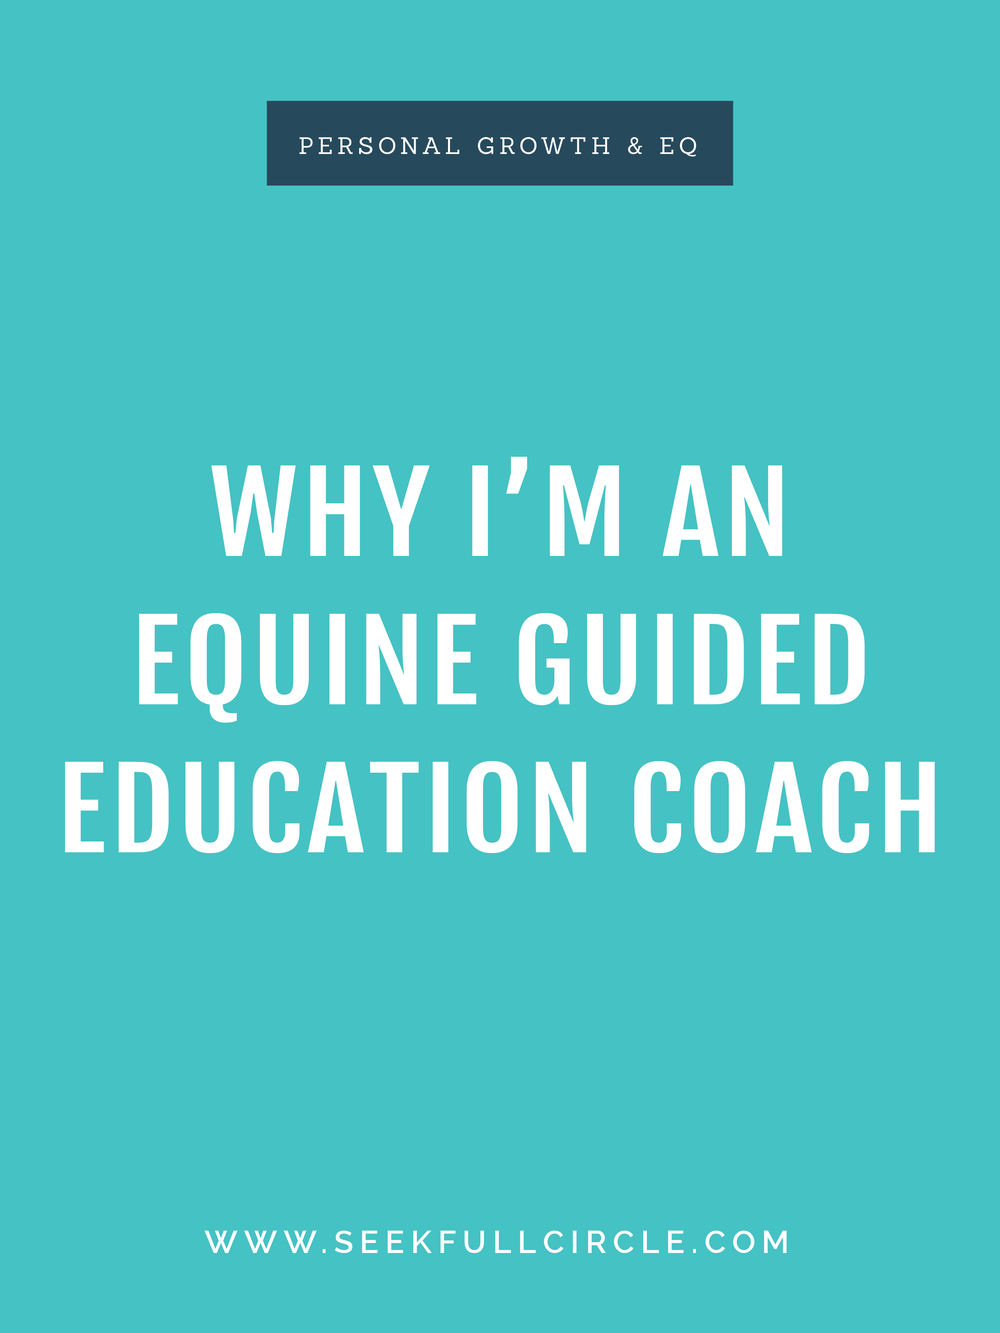 kim waltman fullcircle creative + coaching equine guided education EQ blog